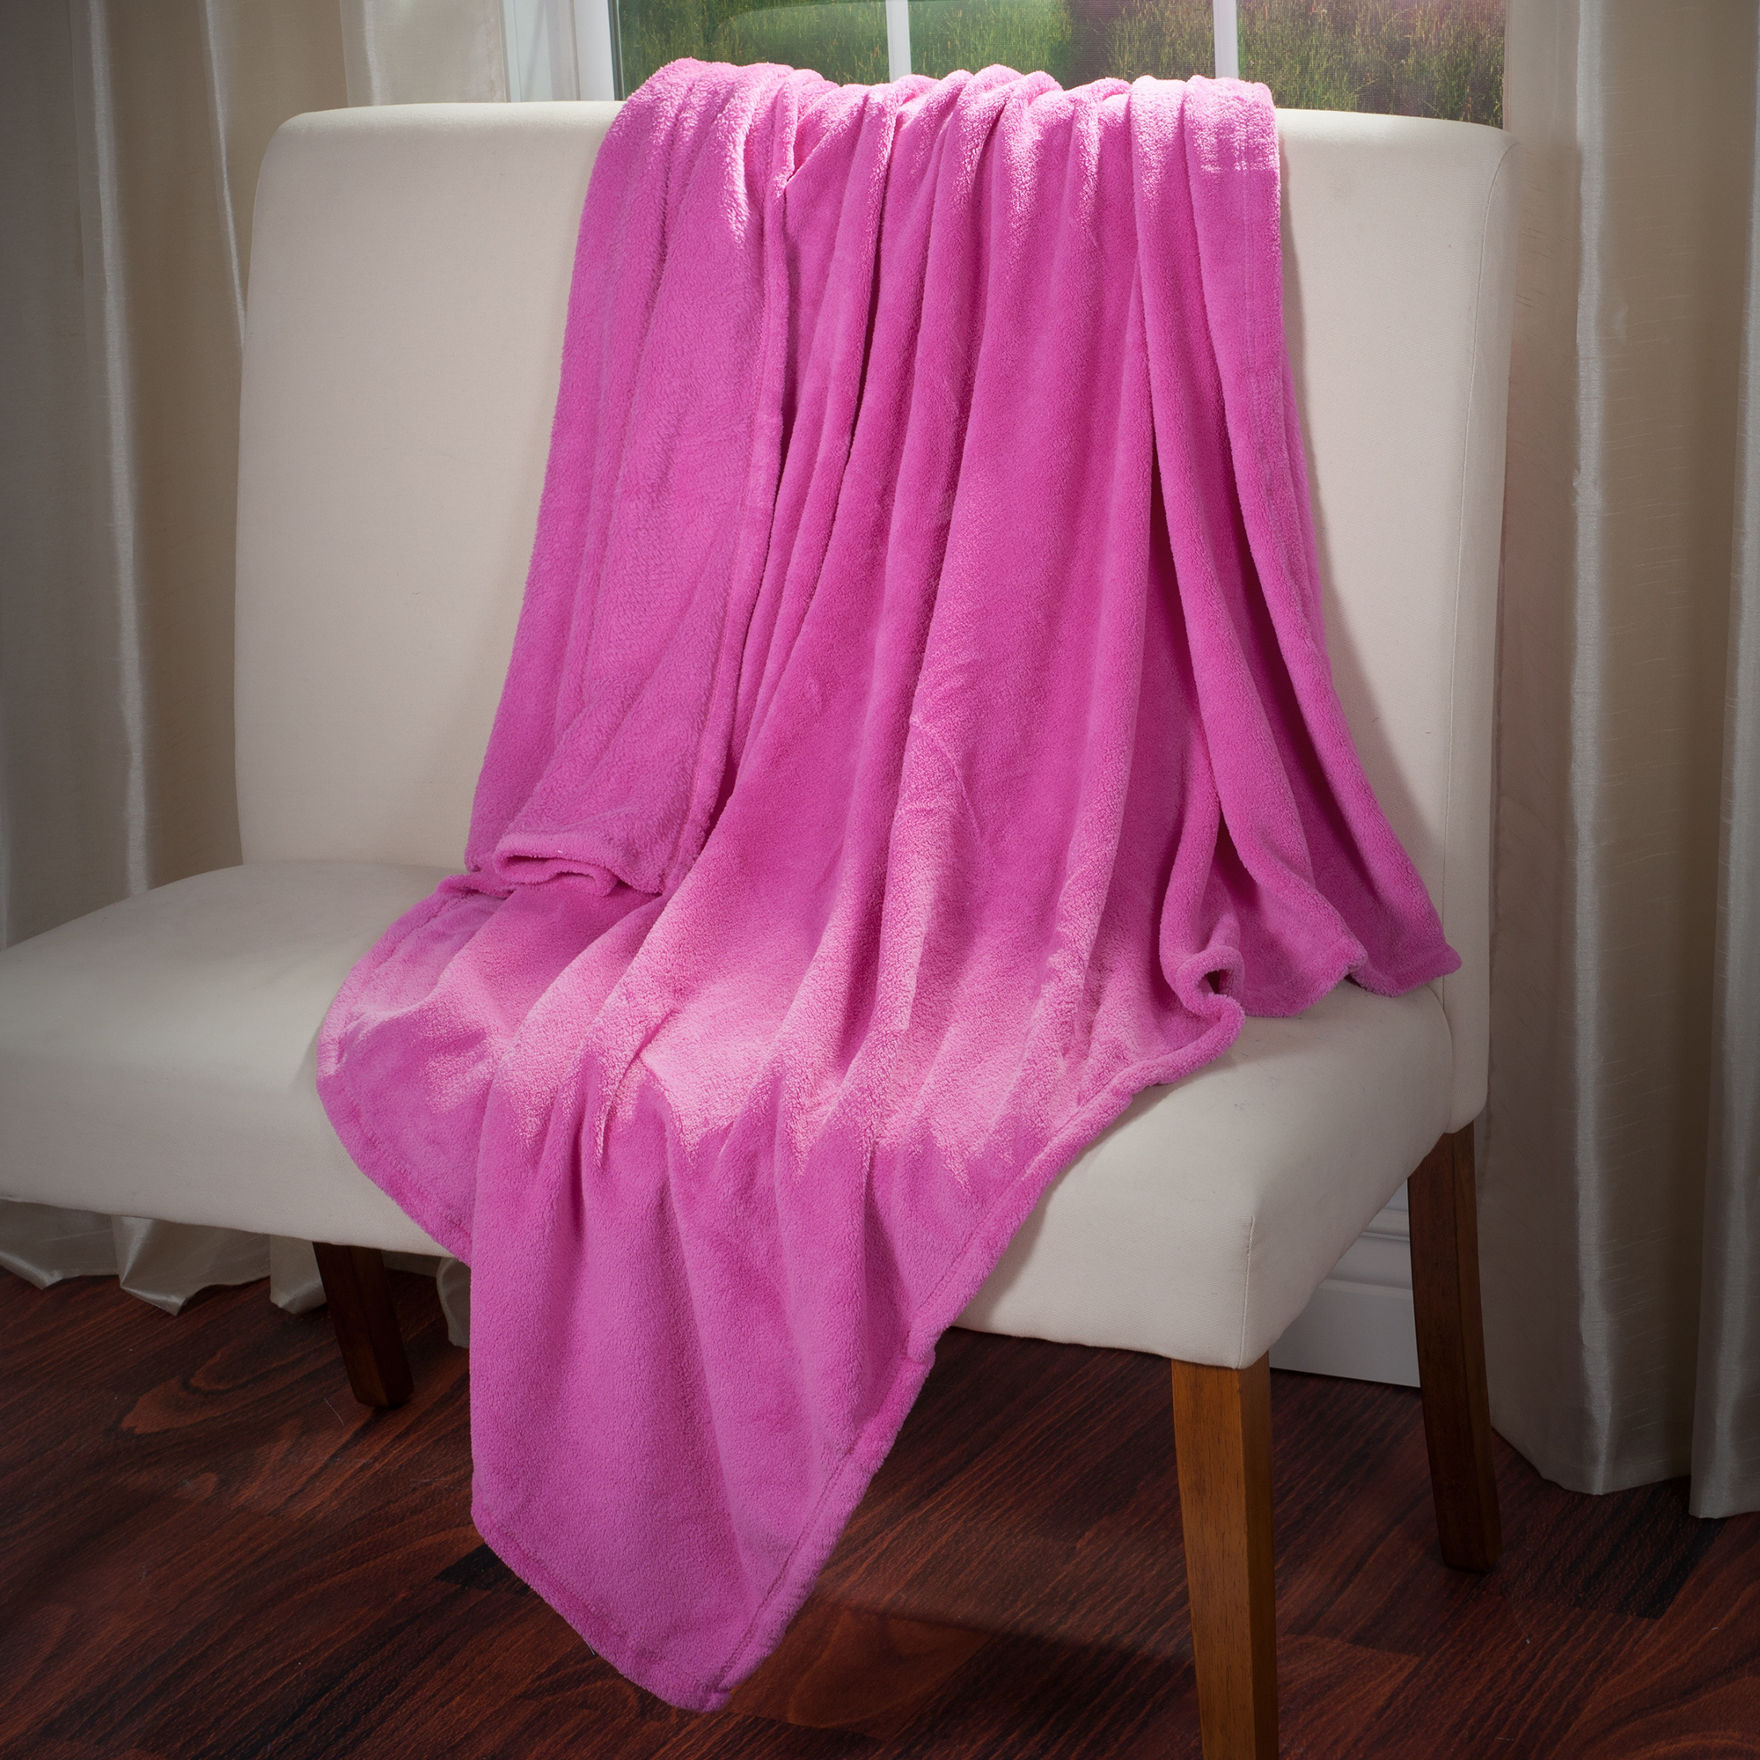 Lavish Home Pink Blankets & Throws